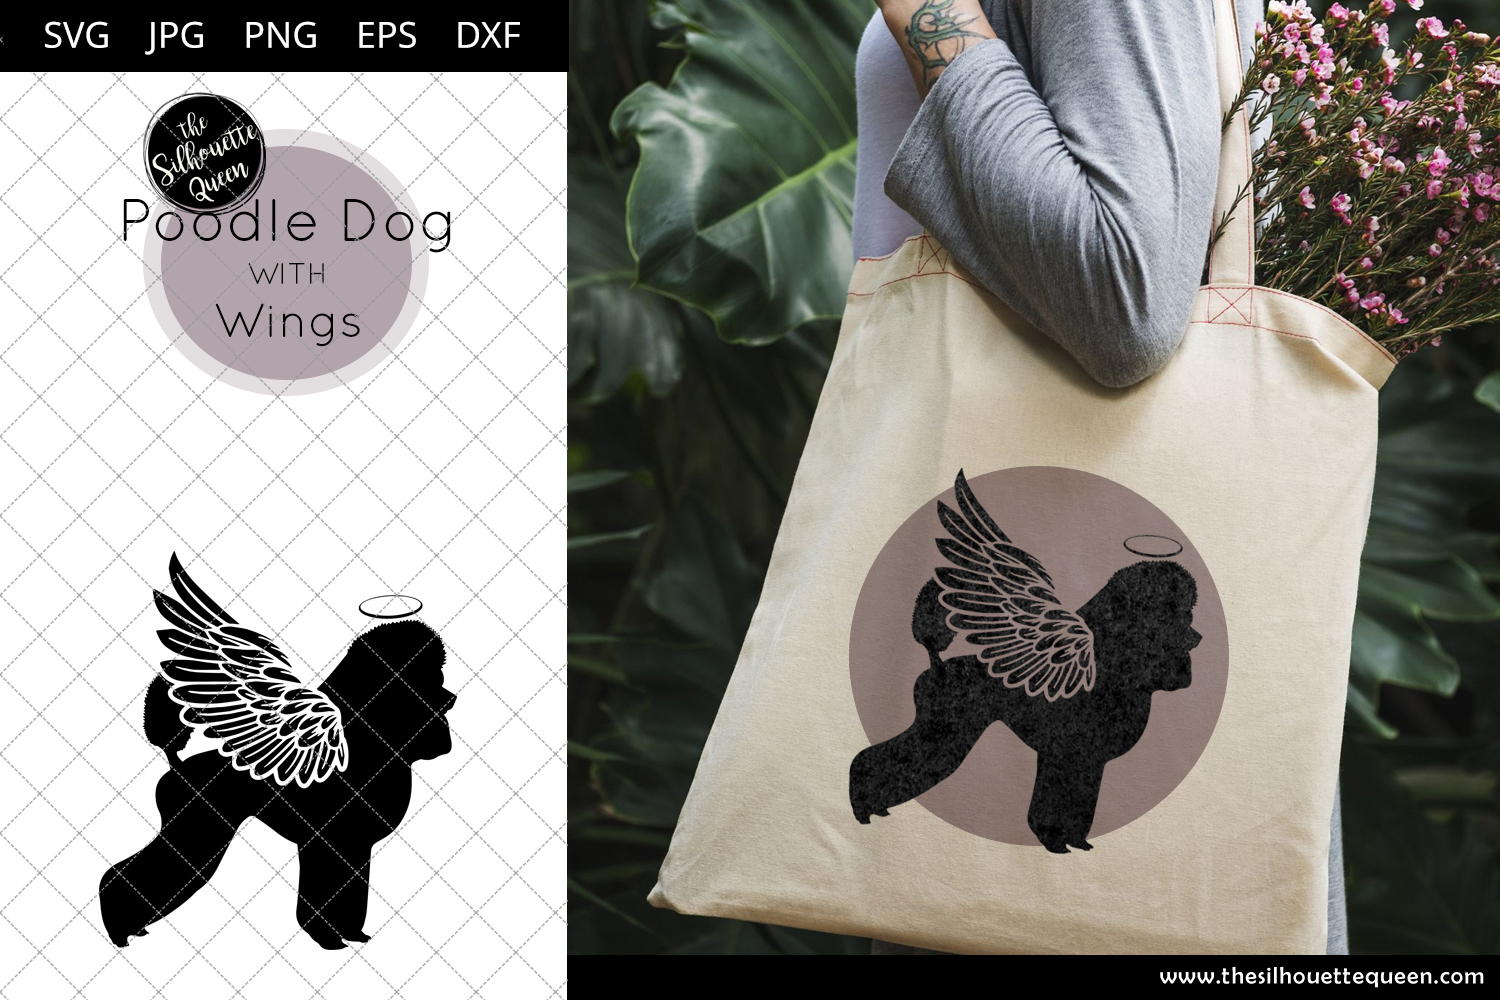 Download Free Poodle Dog 2 With Wings Graphic By Thesilhouettequeenshop for Cricut Explore, Silhouette and other cutting machines.